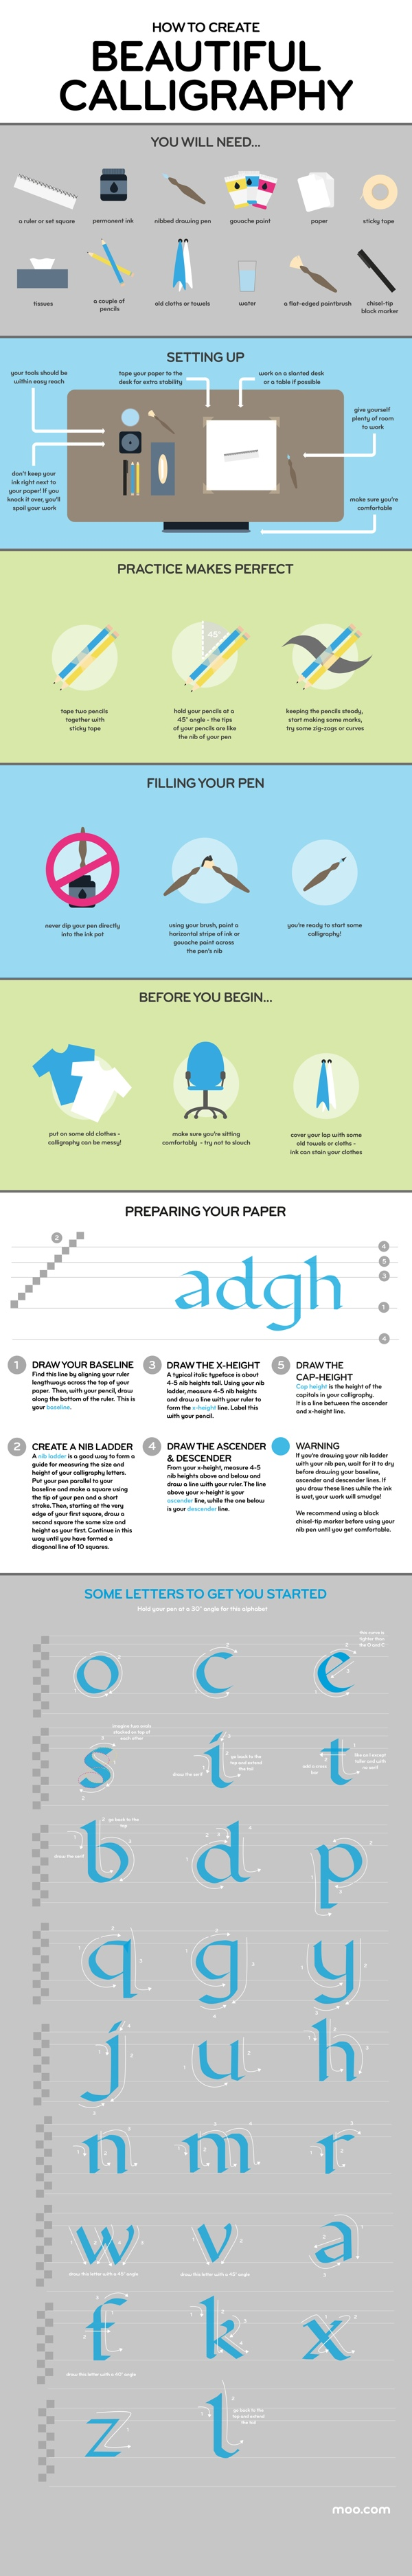 How to Create Beautiful Calligraphy infographic